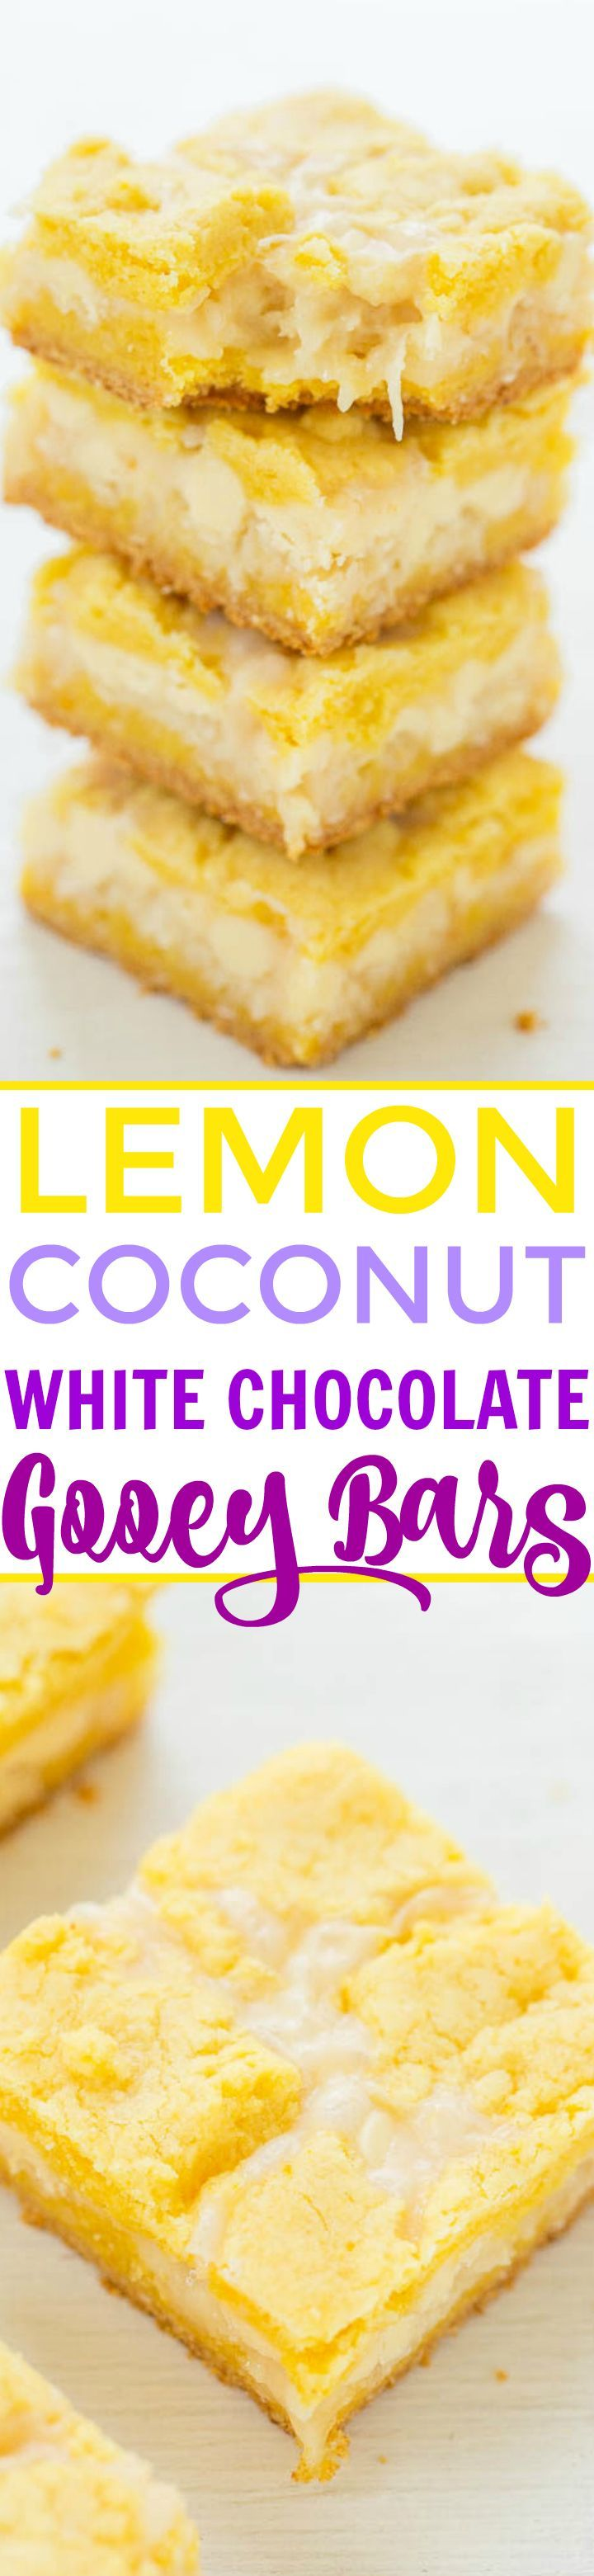 Lemon Coconut White Chocolate Gooey Bars - If you like traditional lemon bars, you'll LOVE this EASY recipe for soft, chewy, and oh-so-gooey lemon bars!! Loaded with white chocolate and coconut!!